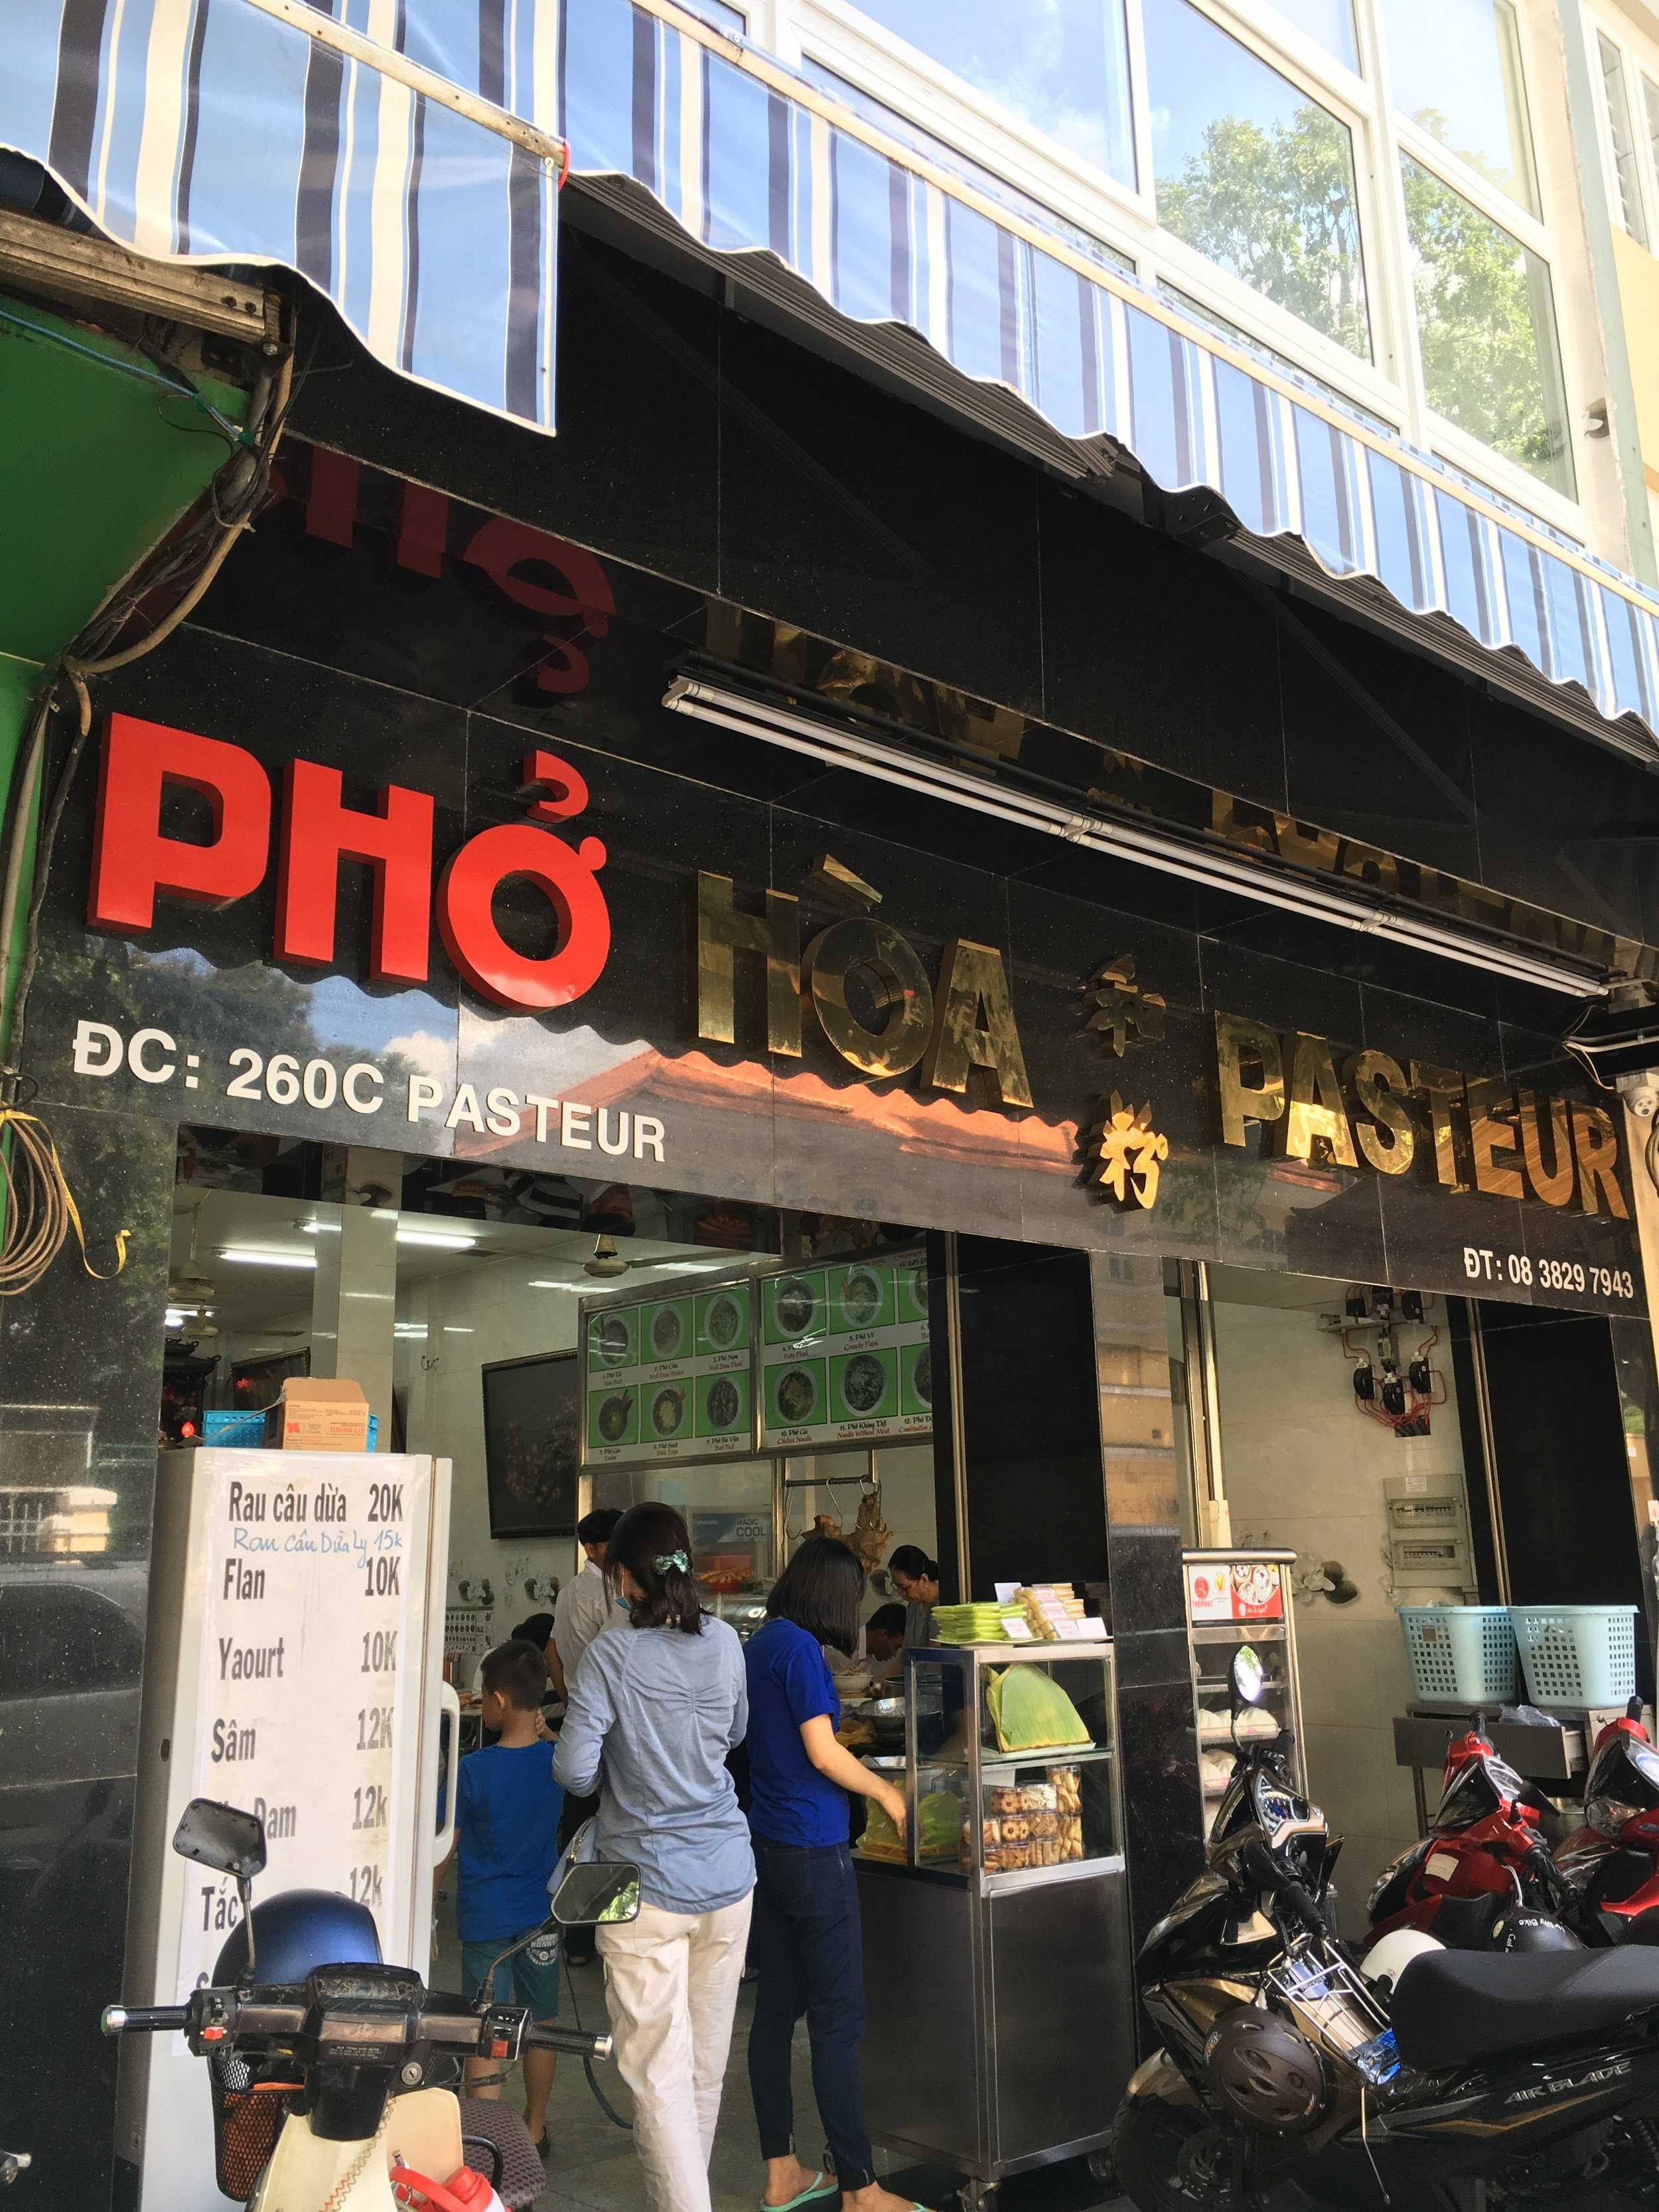 Outside view of Phở Hòa Pasteur